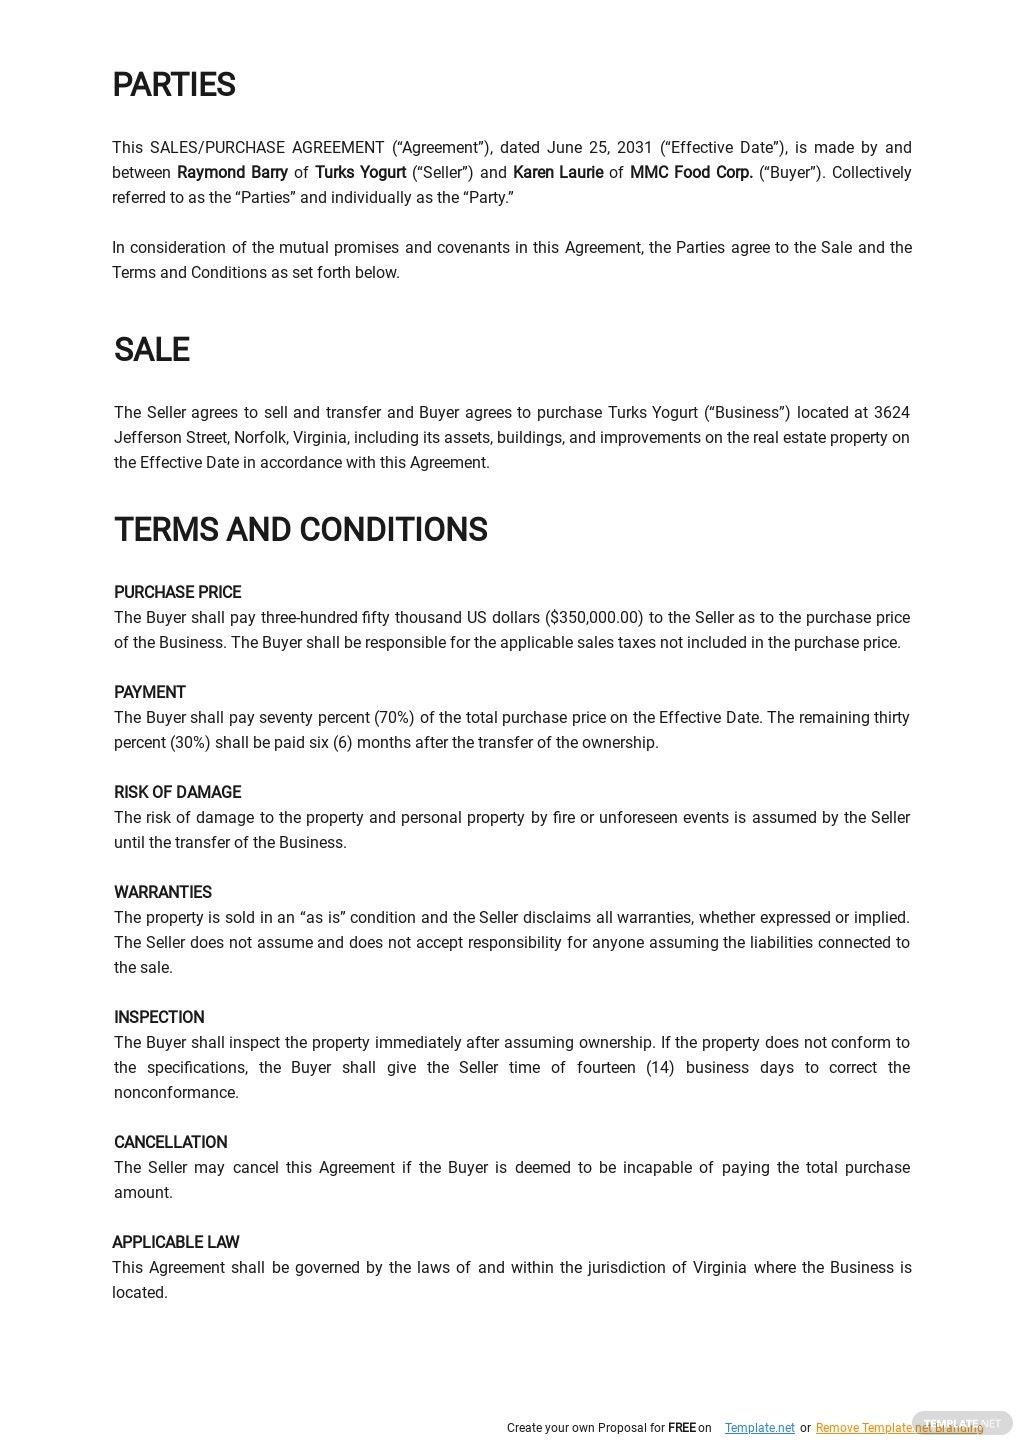 Simple Business Purchase Agreement Template 1.jpe